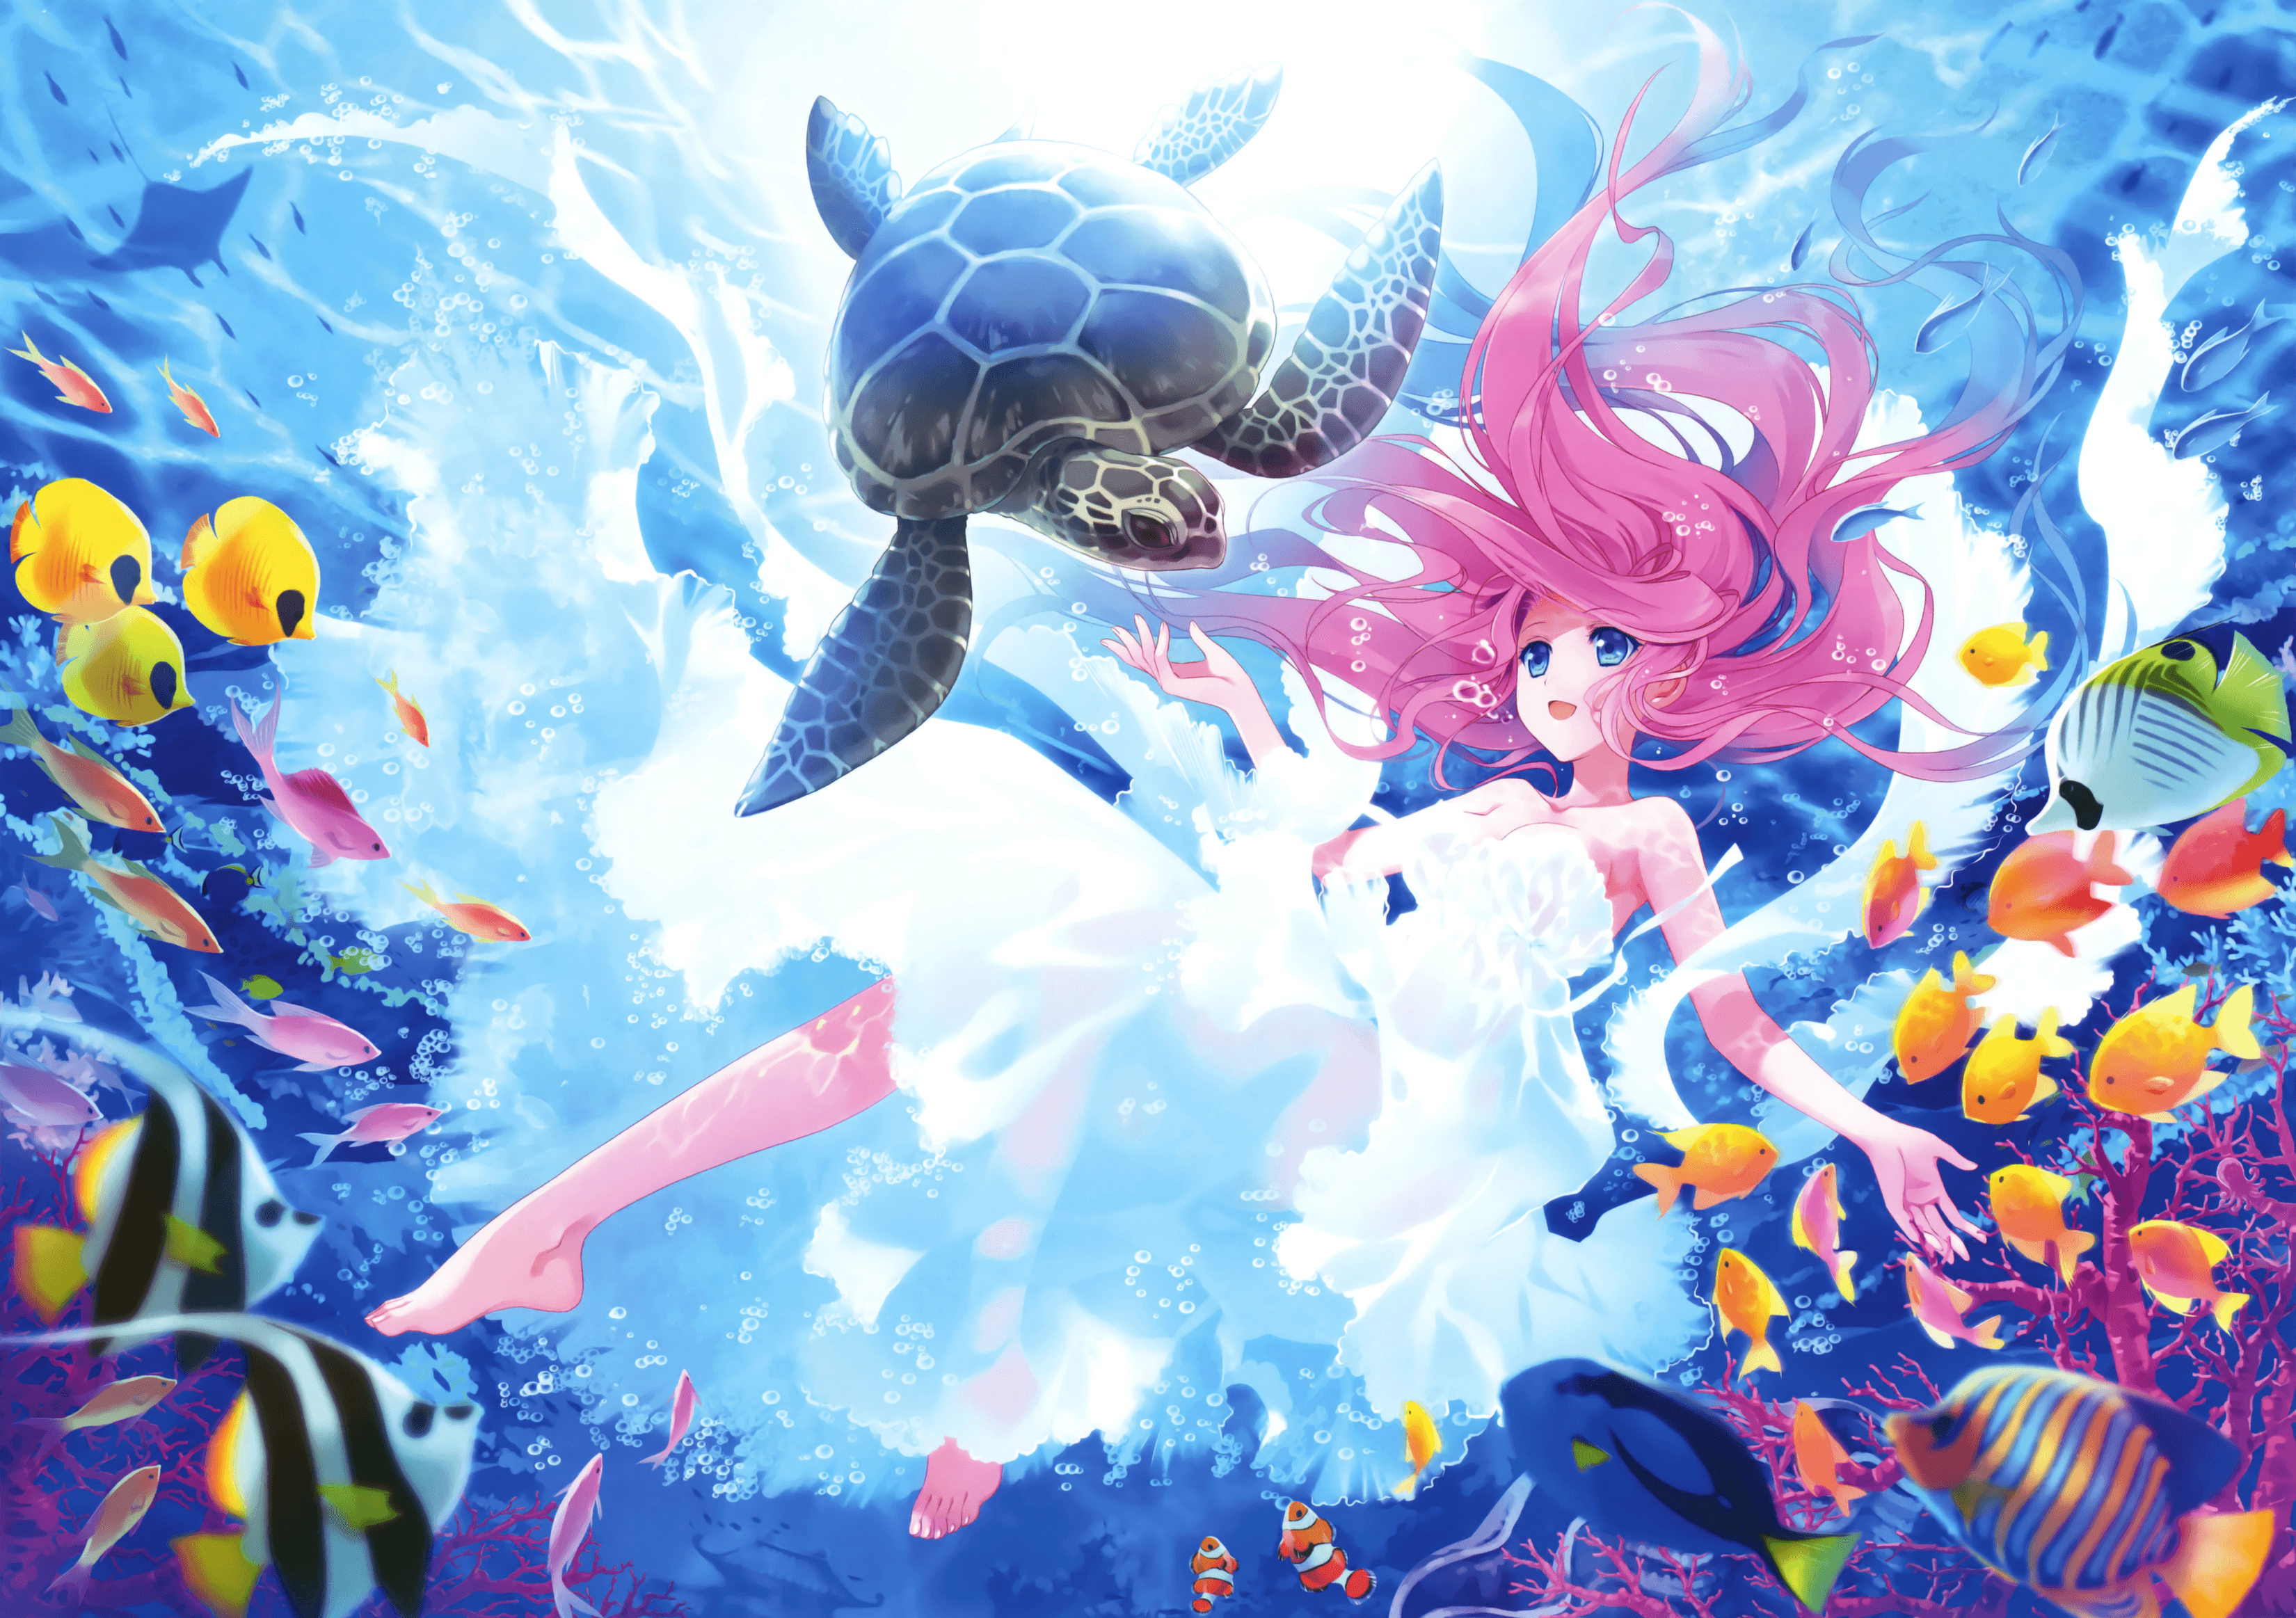 3300x2326 Wallpaper Kawaii, Mermaid, Turtle, Fishes, Underwater, HD, Anime, #3453